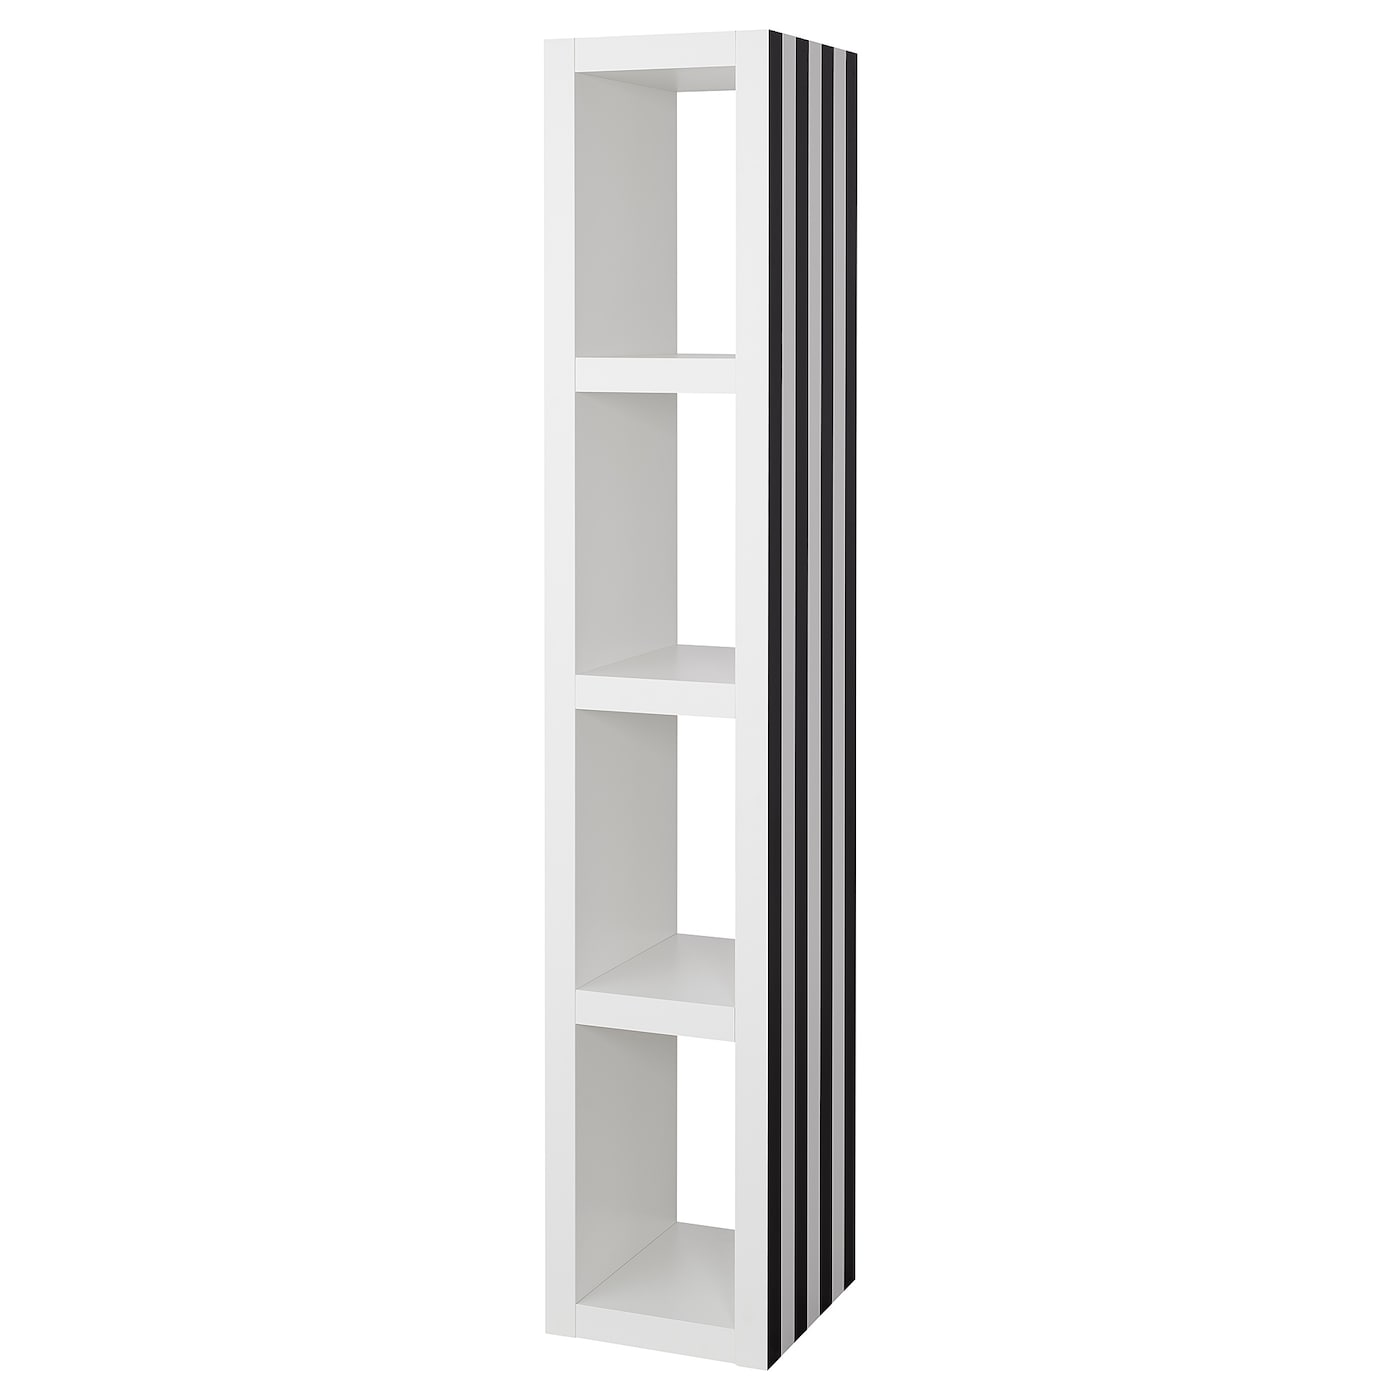 IKEA LACK shelving unit Can also be hung on a wall.